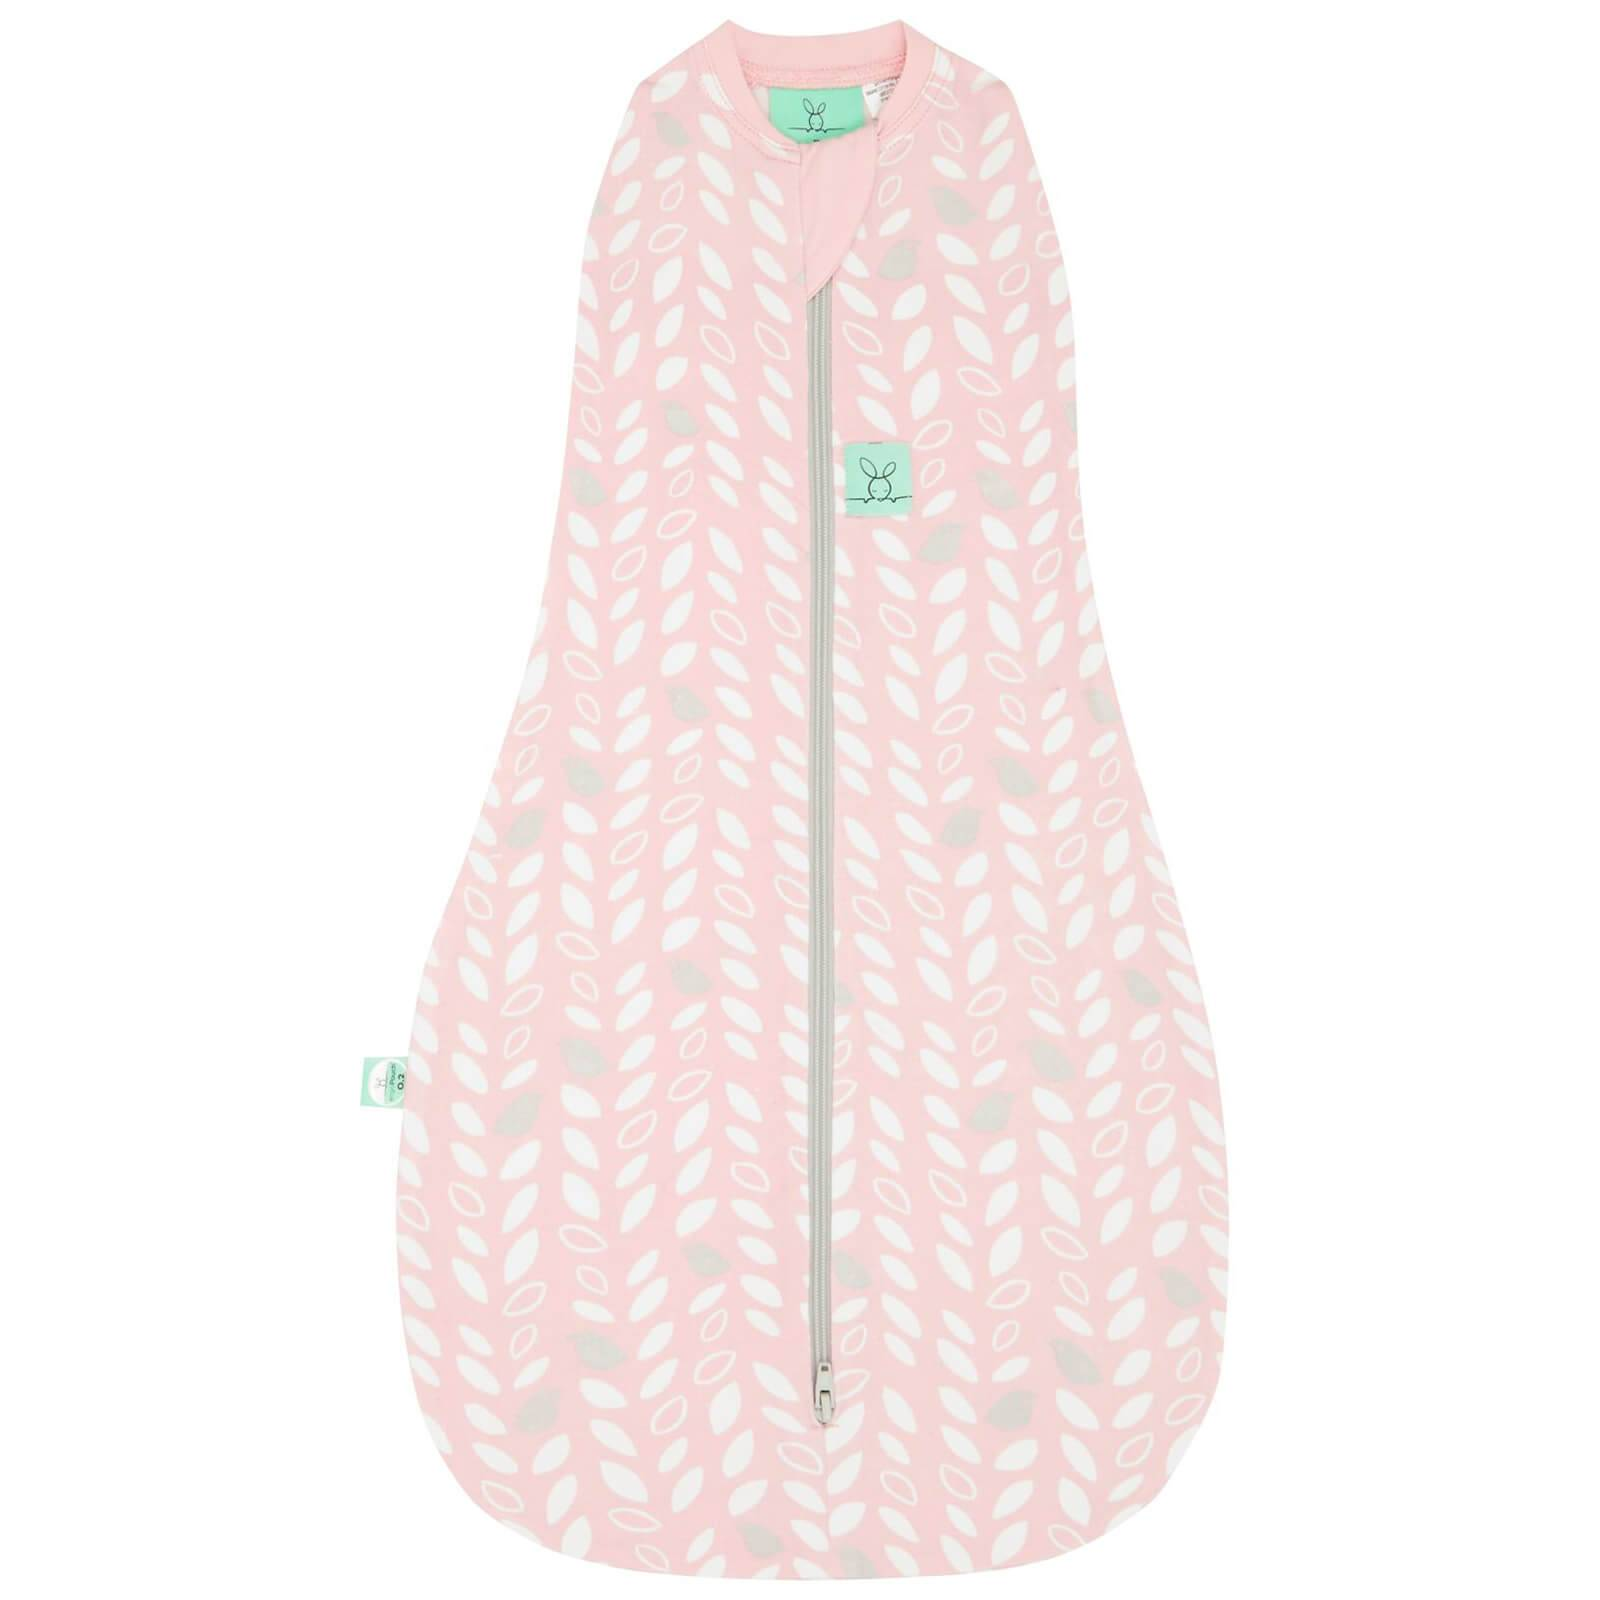 ergoPouch Cocoon Swaddle and Sleep Bag - 1 Tog - Spring Leaves - 0-3 months - Pink